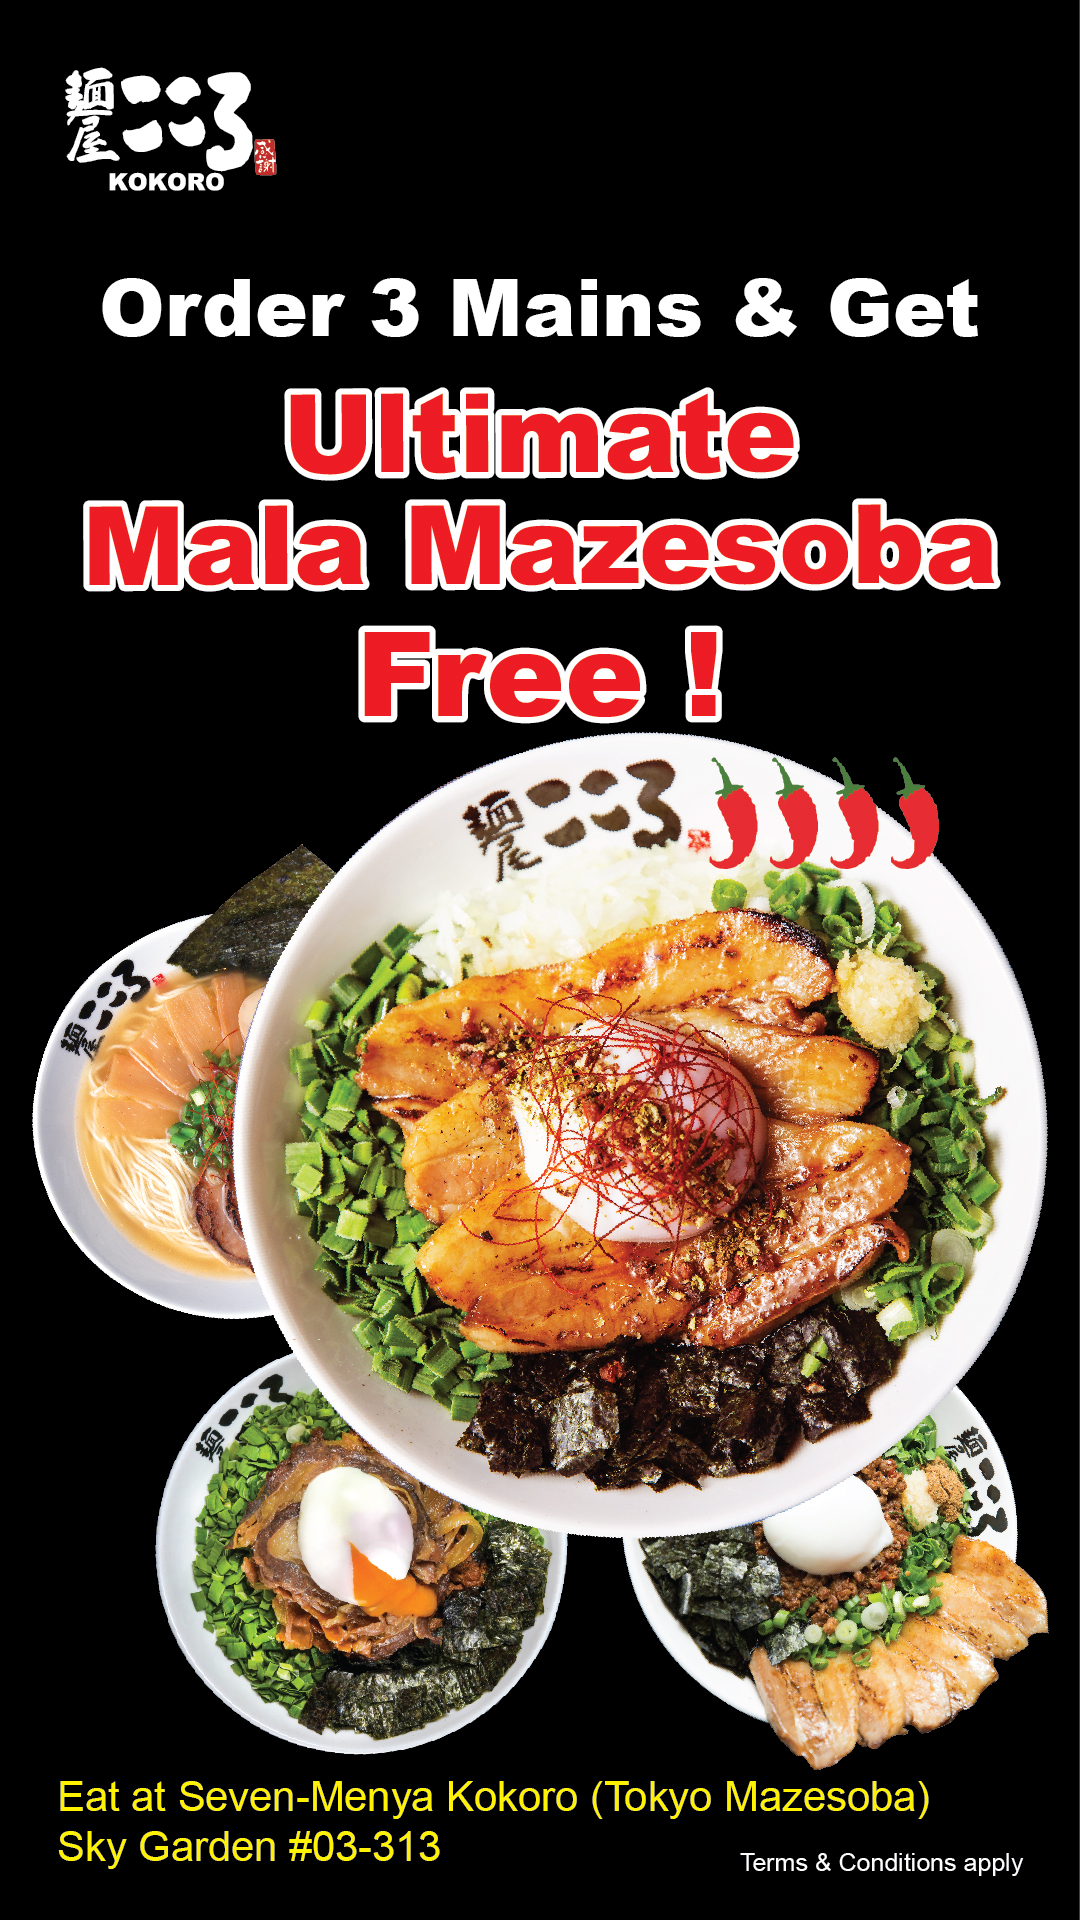 Menya Kokoro Singapore Get off-the-menu Ultimate Furious Mala Maze Soba for FREE Promotion ends 30 Sep 2019 | Why Not Deals & Promotions